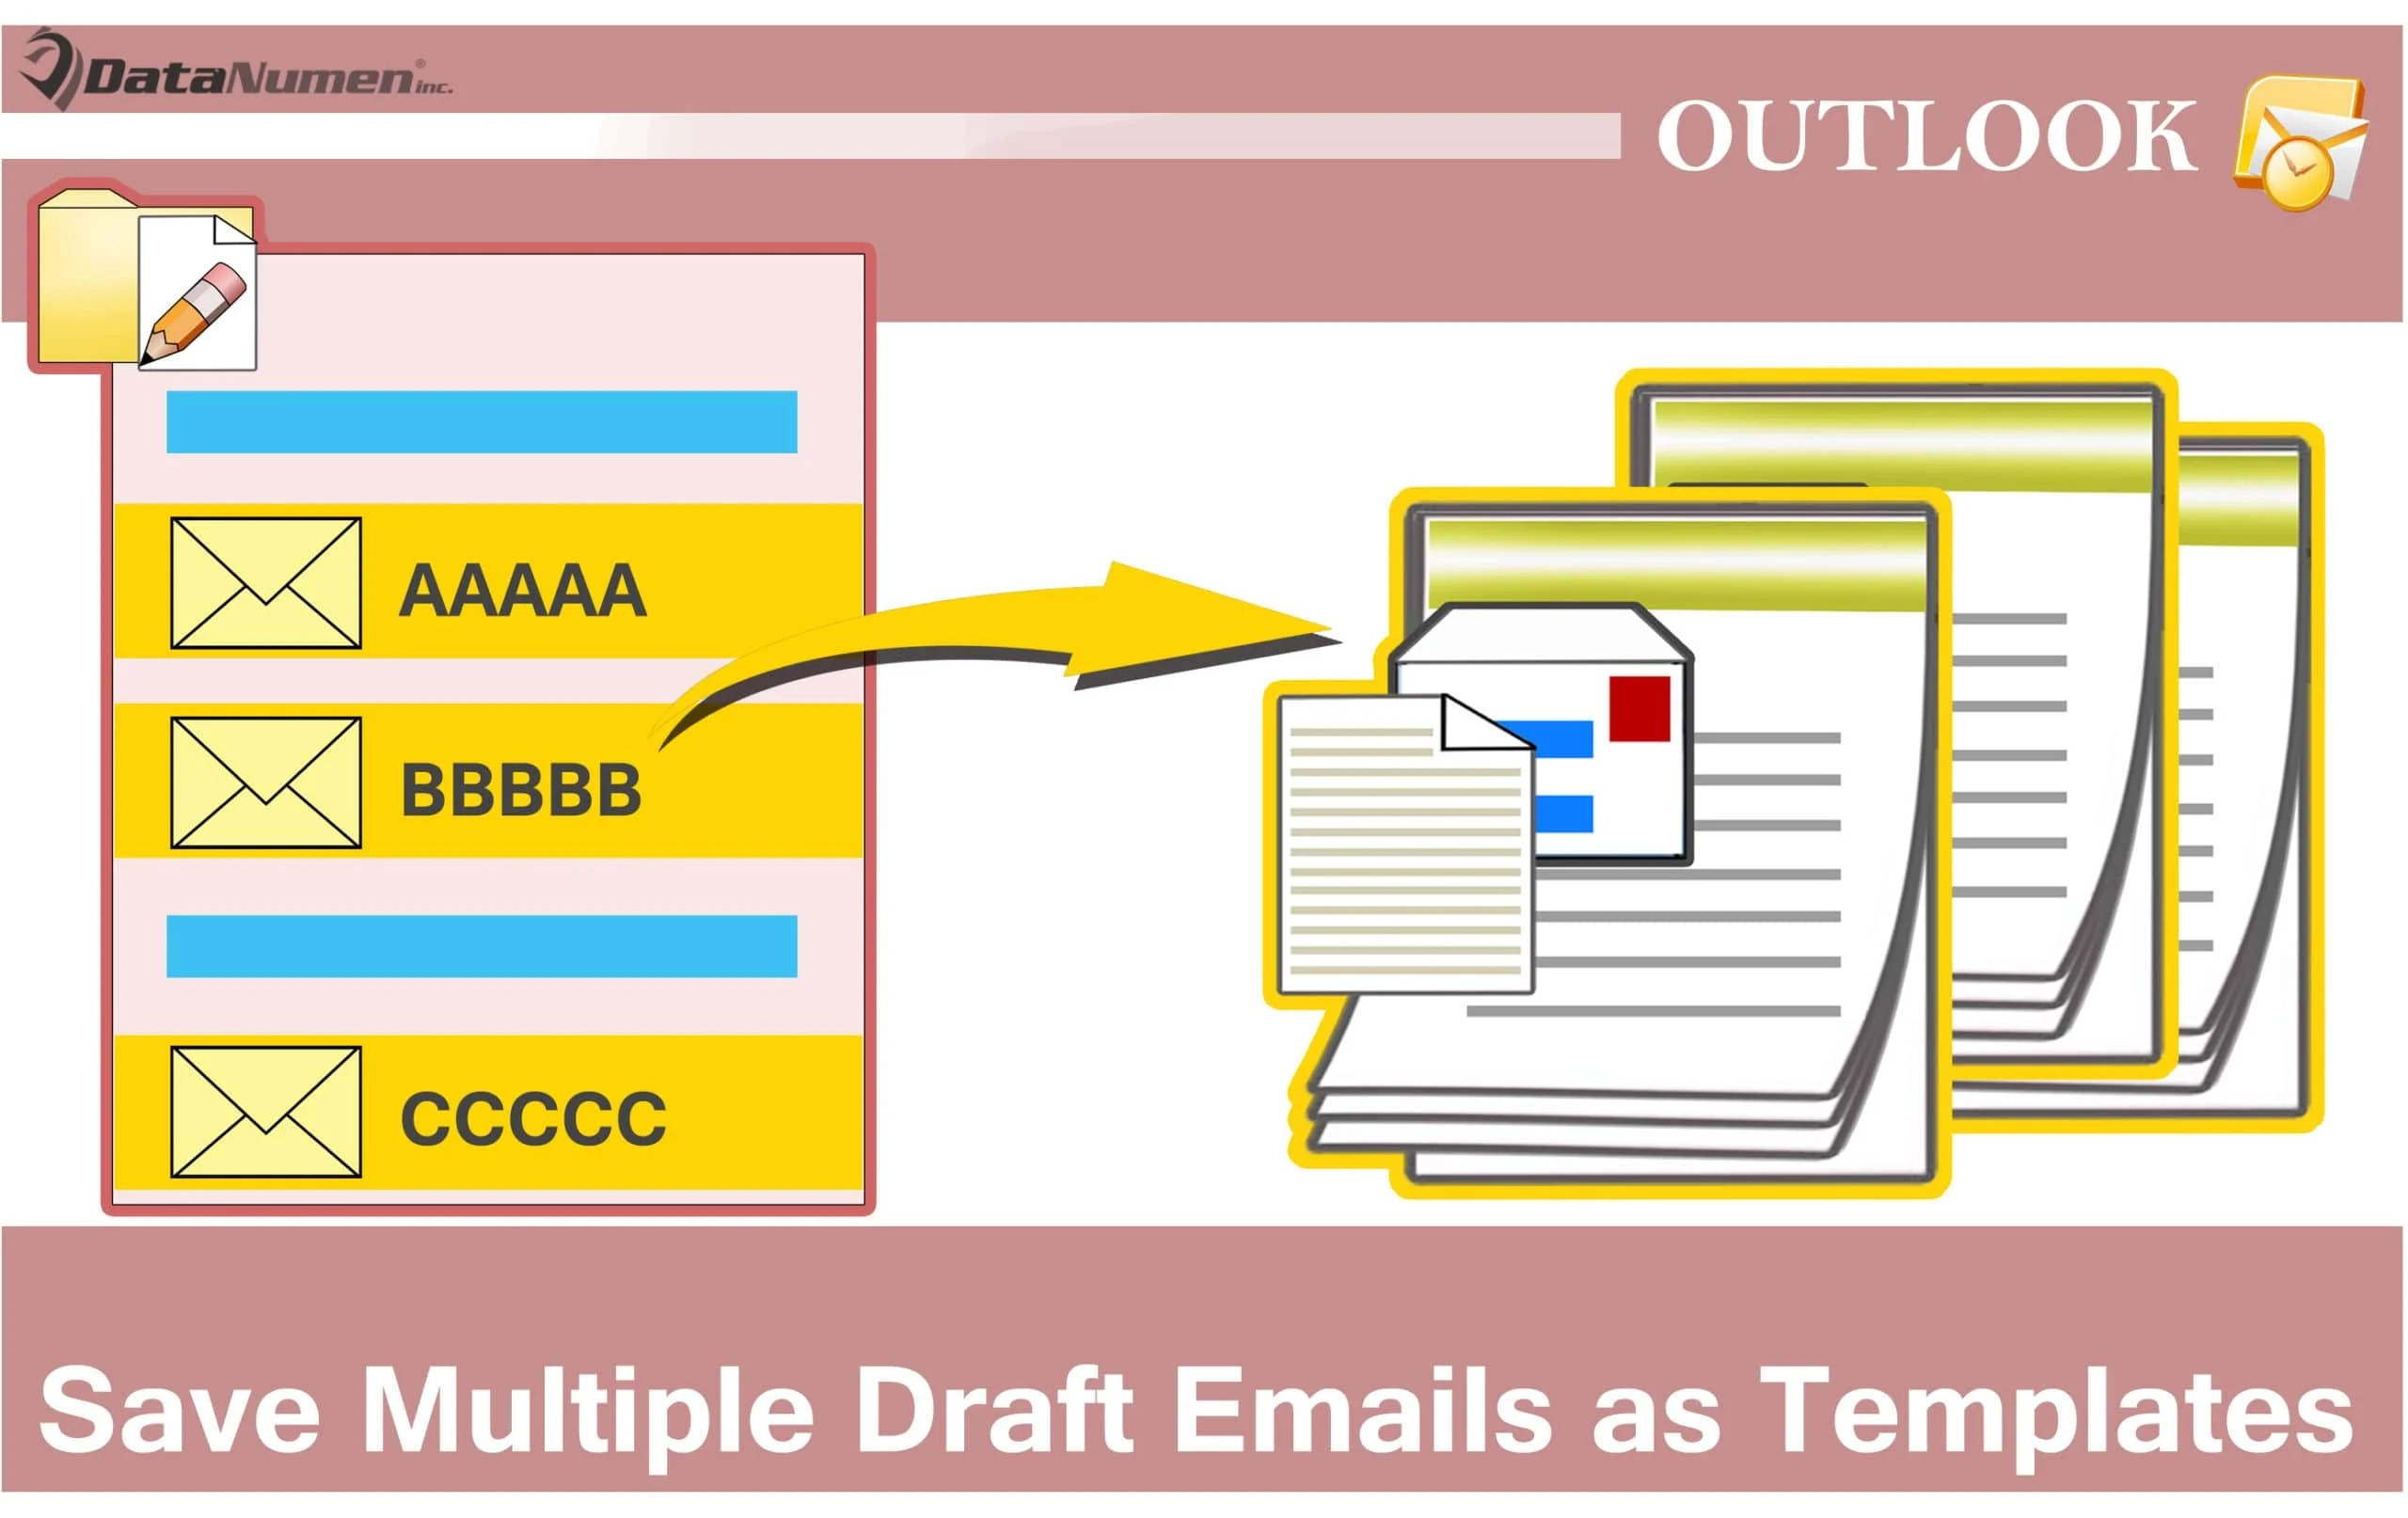 Batch Save Multiple Draft Emails as Outlook Templates